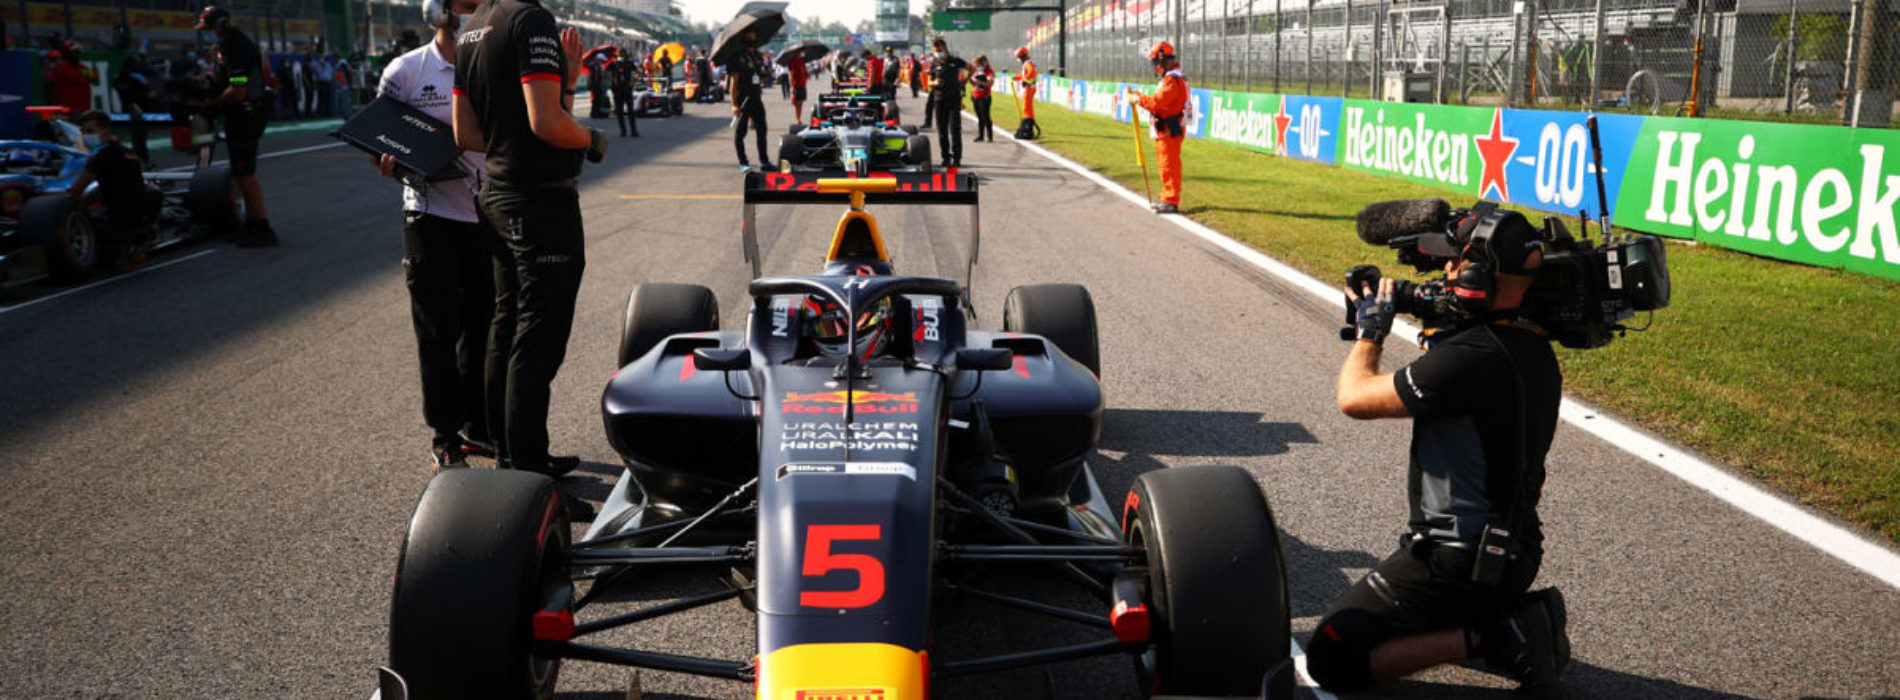 Liam Lawson races Final Round in Formula 3 Championship at Mugello this weekend